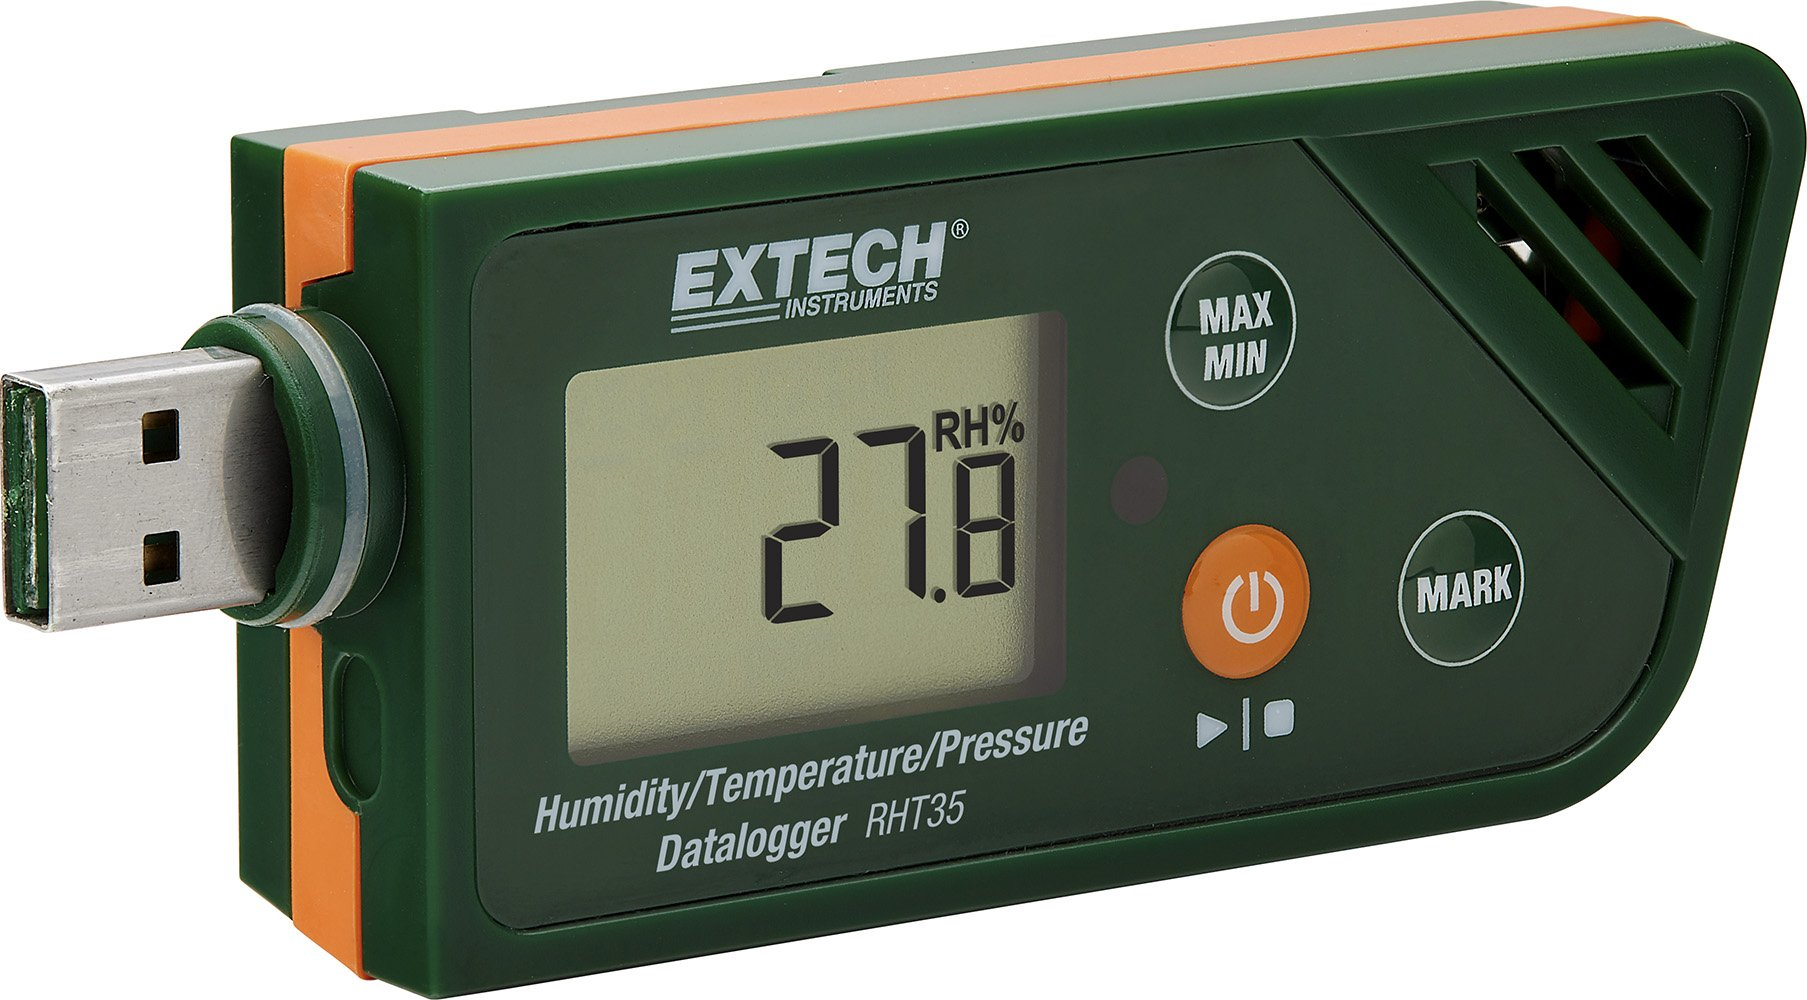 Extech RHT35 USB Humidity, Temperature and Pressure Datalogger by Extech